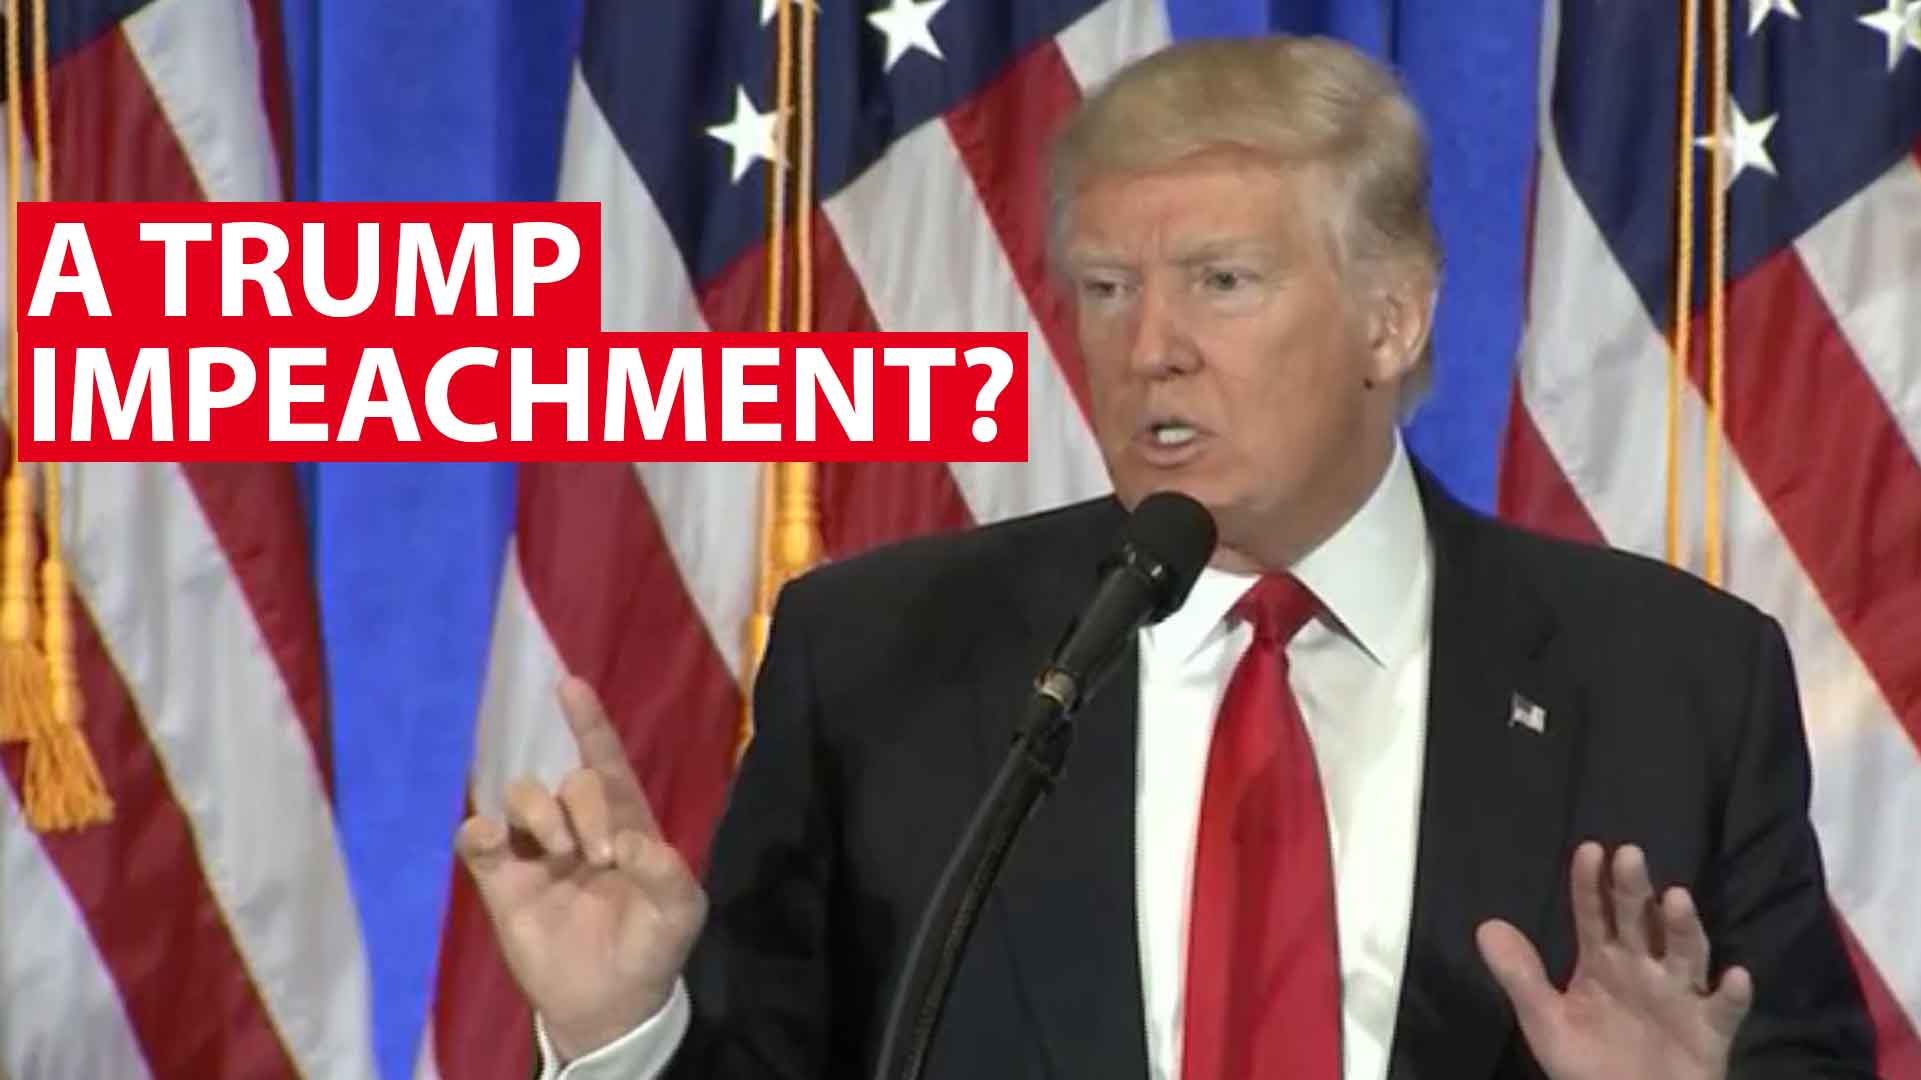 A Trump impeachment by this year? The debate on Insight